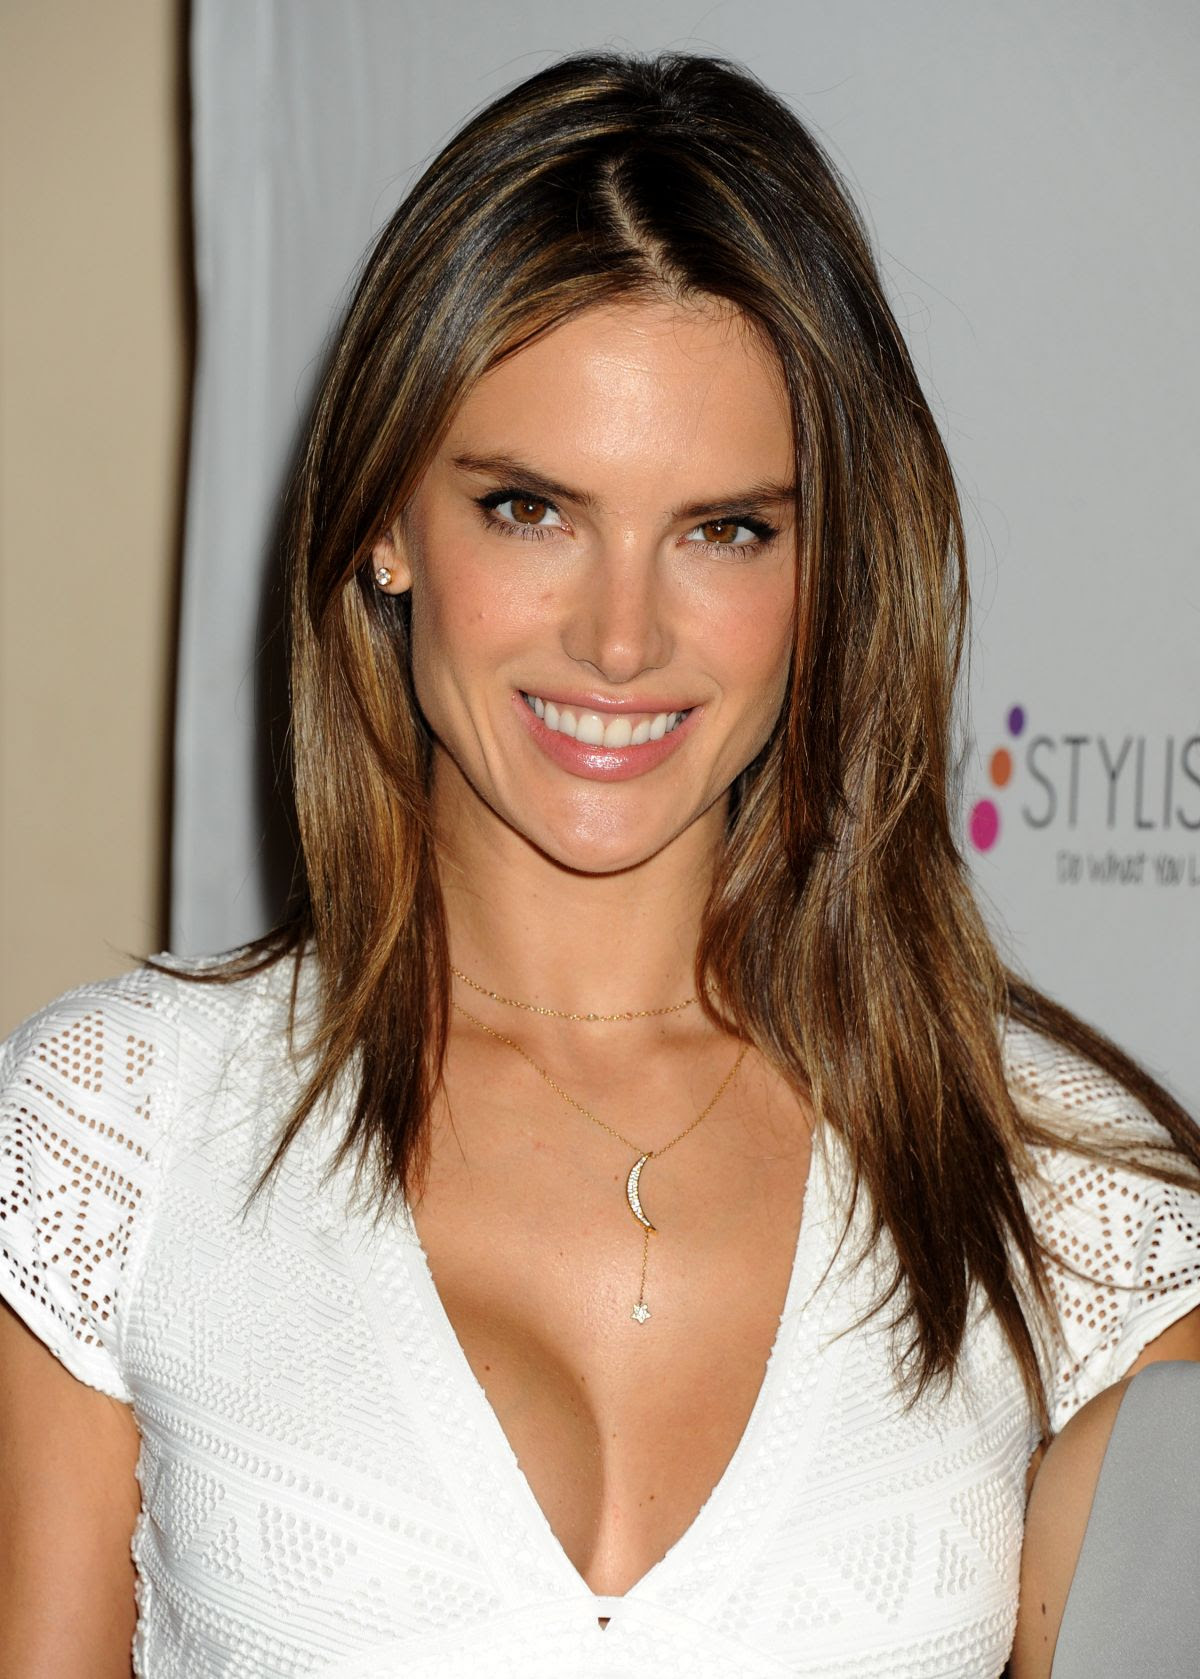 ALESSANDRA AMBROSIO at Simple Stylist Do What You Love! Conference in Los Angeles